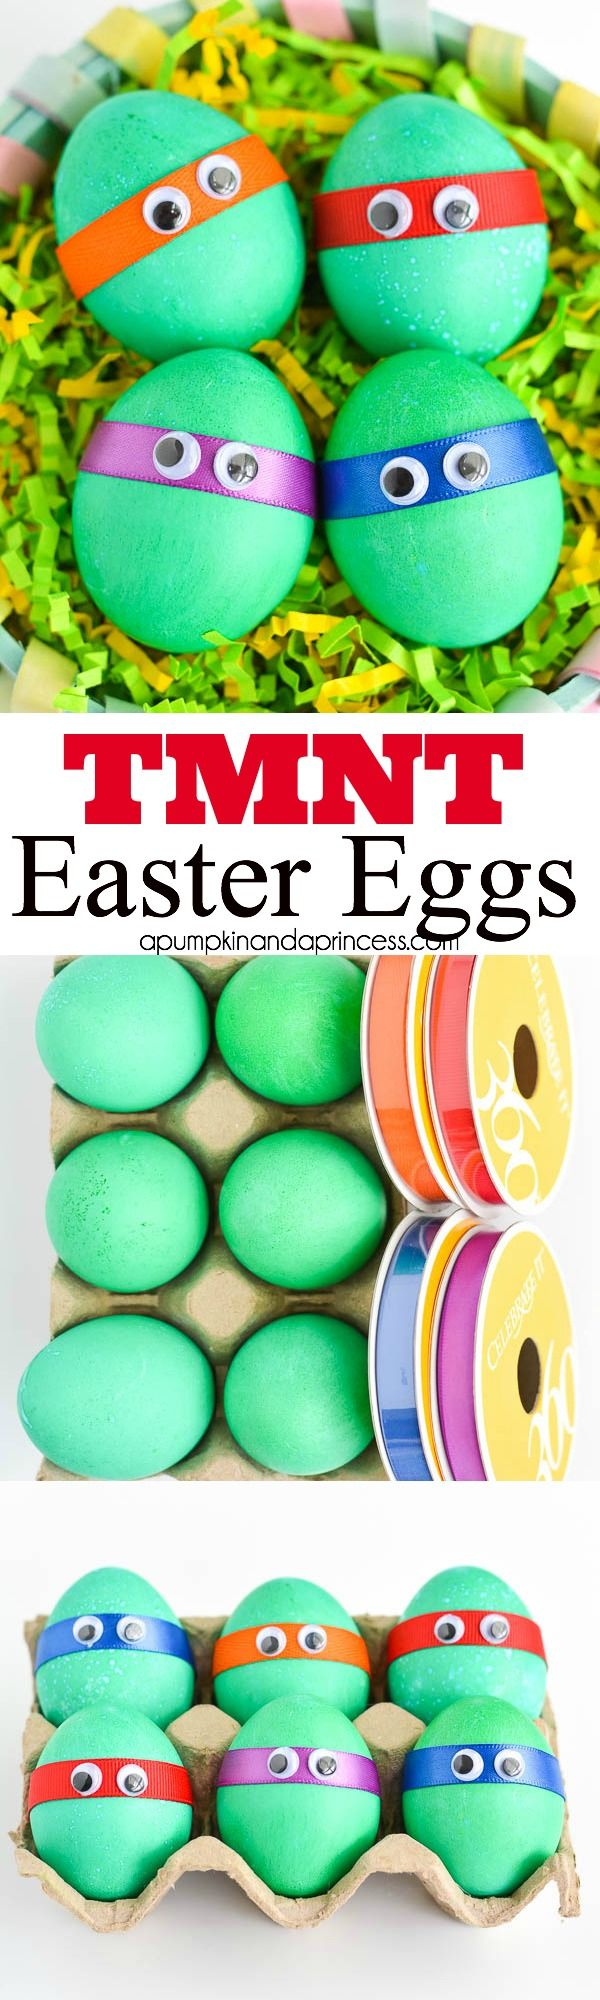 Dyed TMNT Easter Eggs